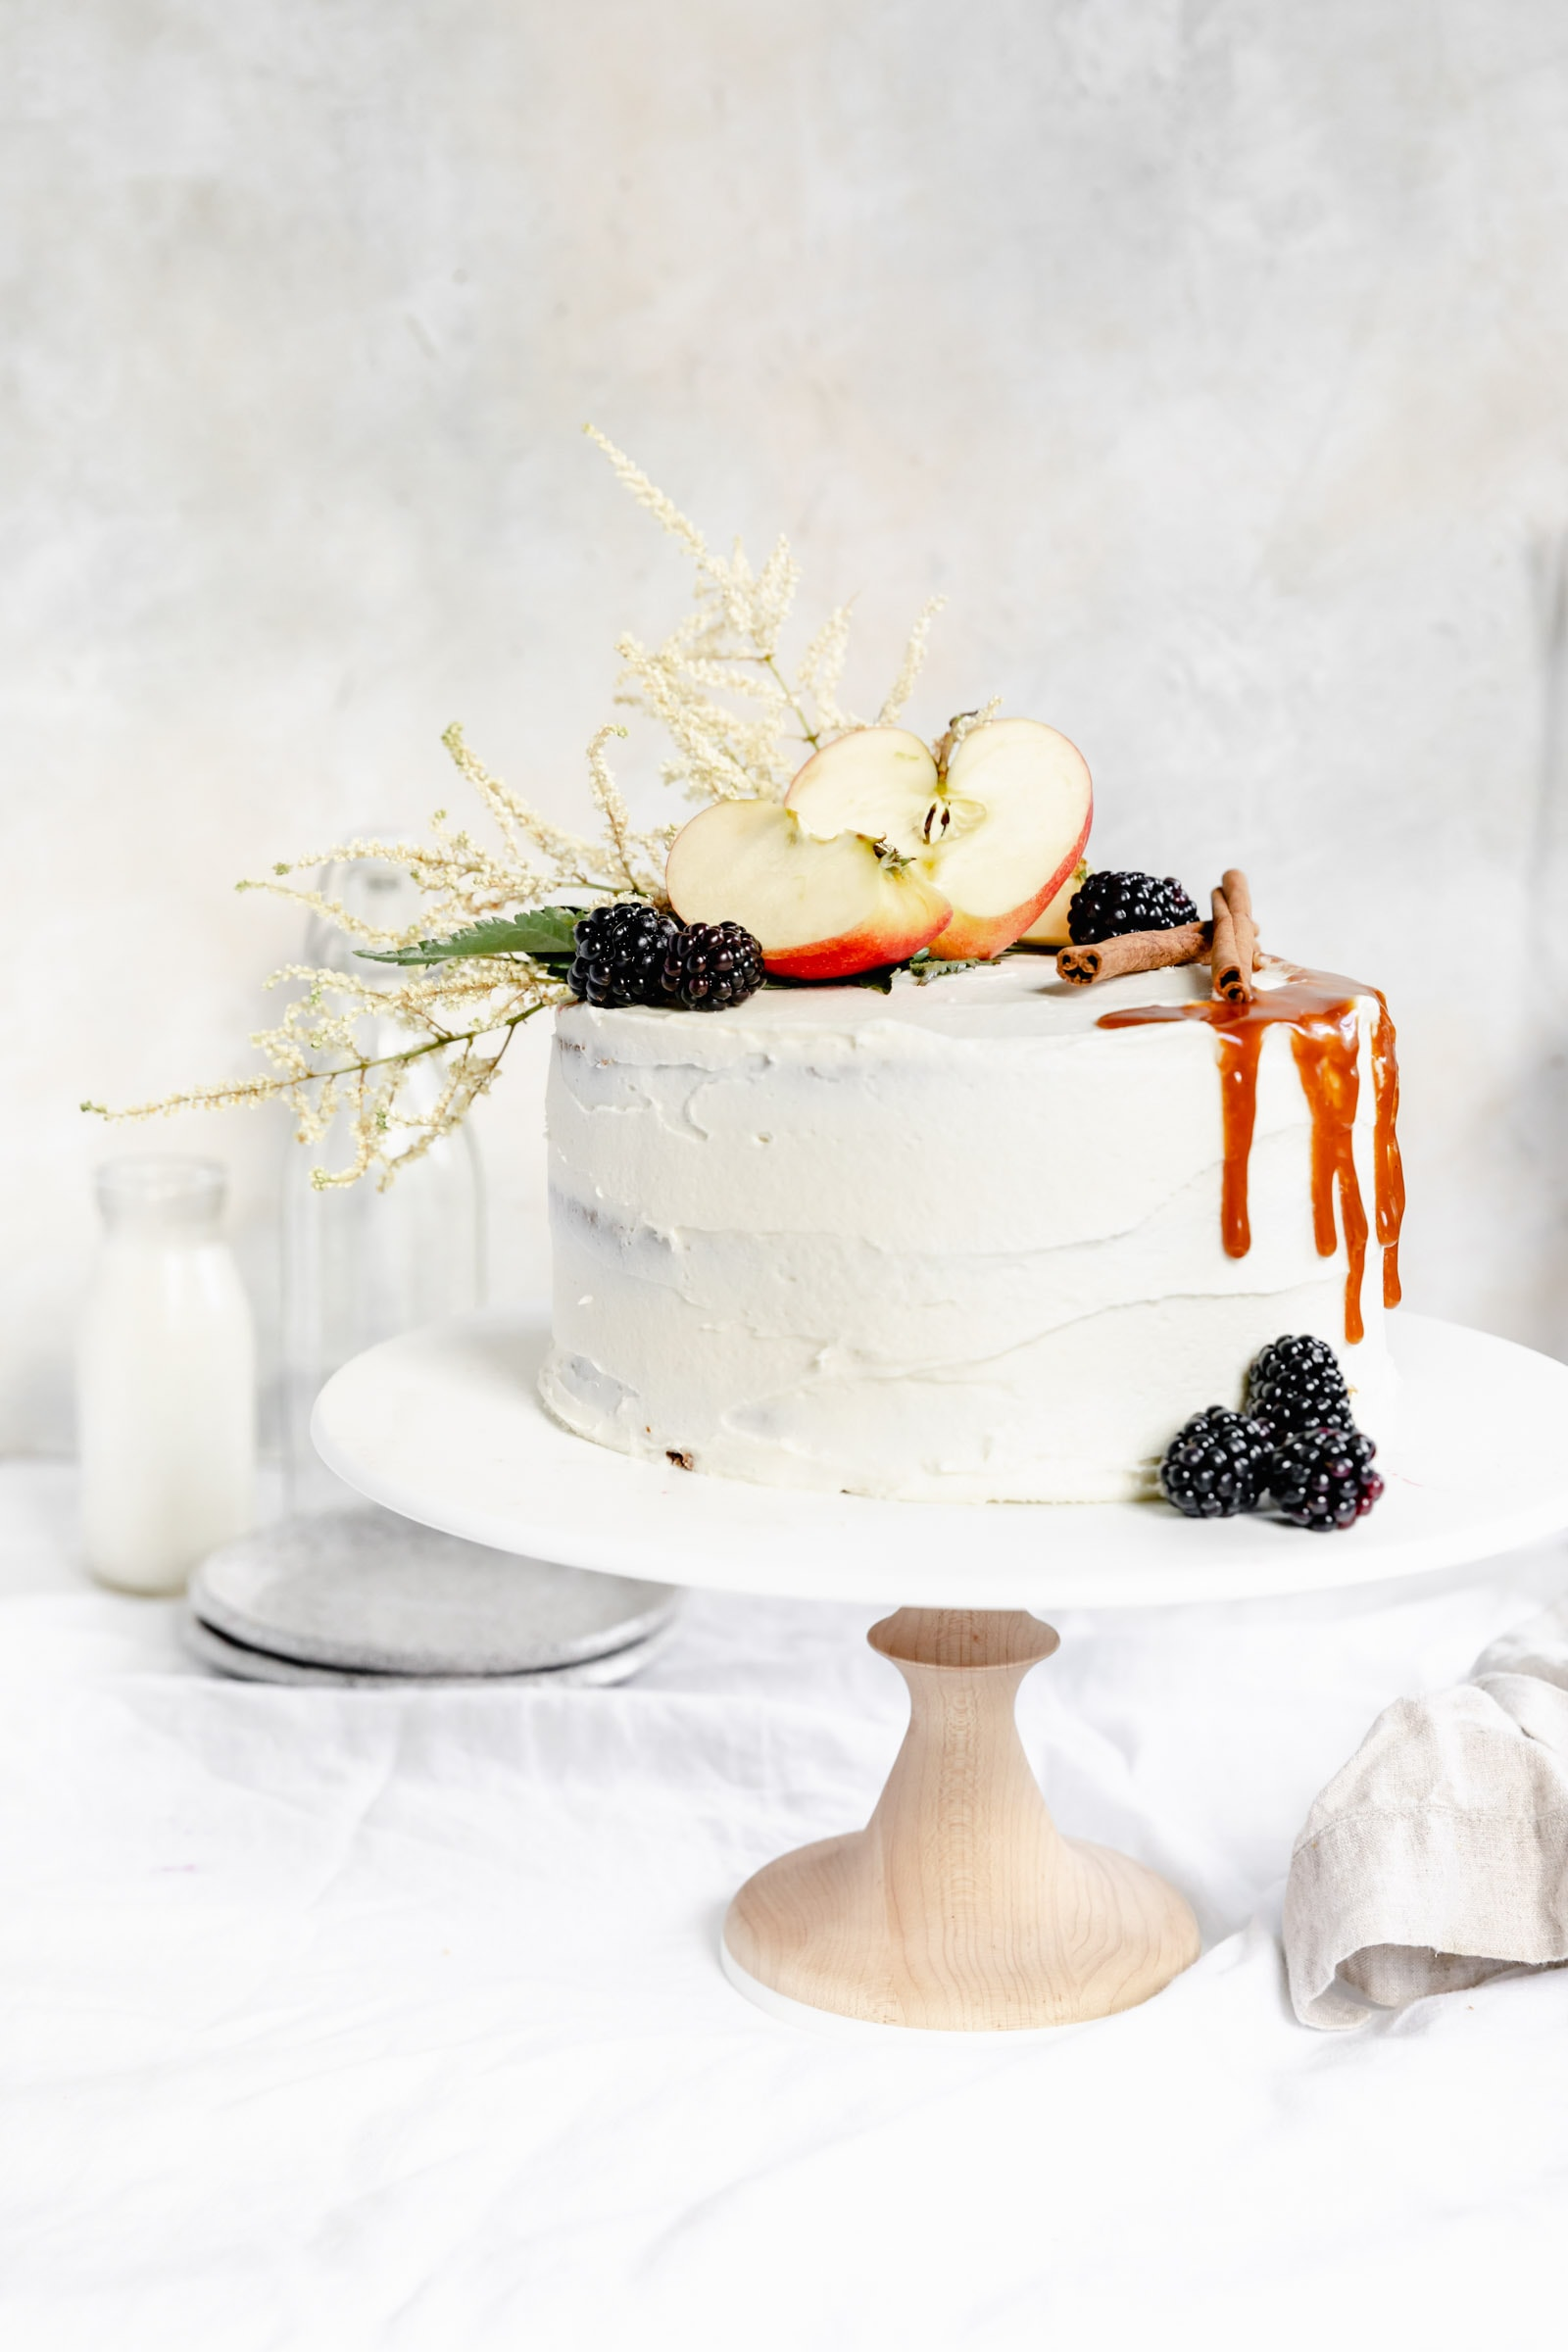 apple cake with cream cheese frosting and berries on a cake stand